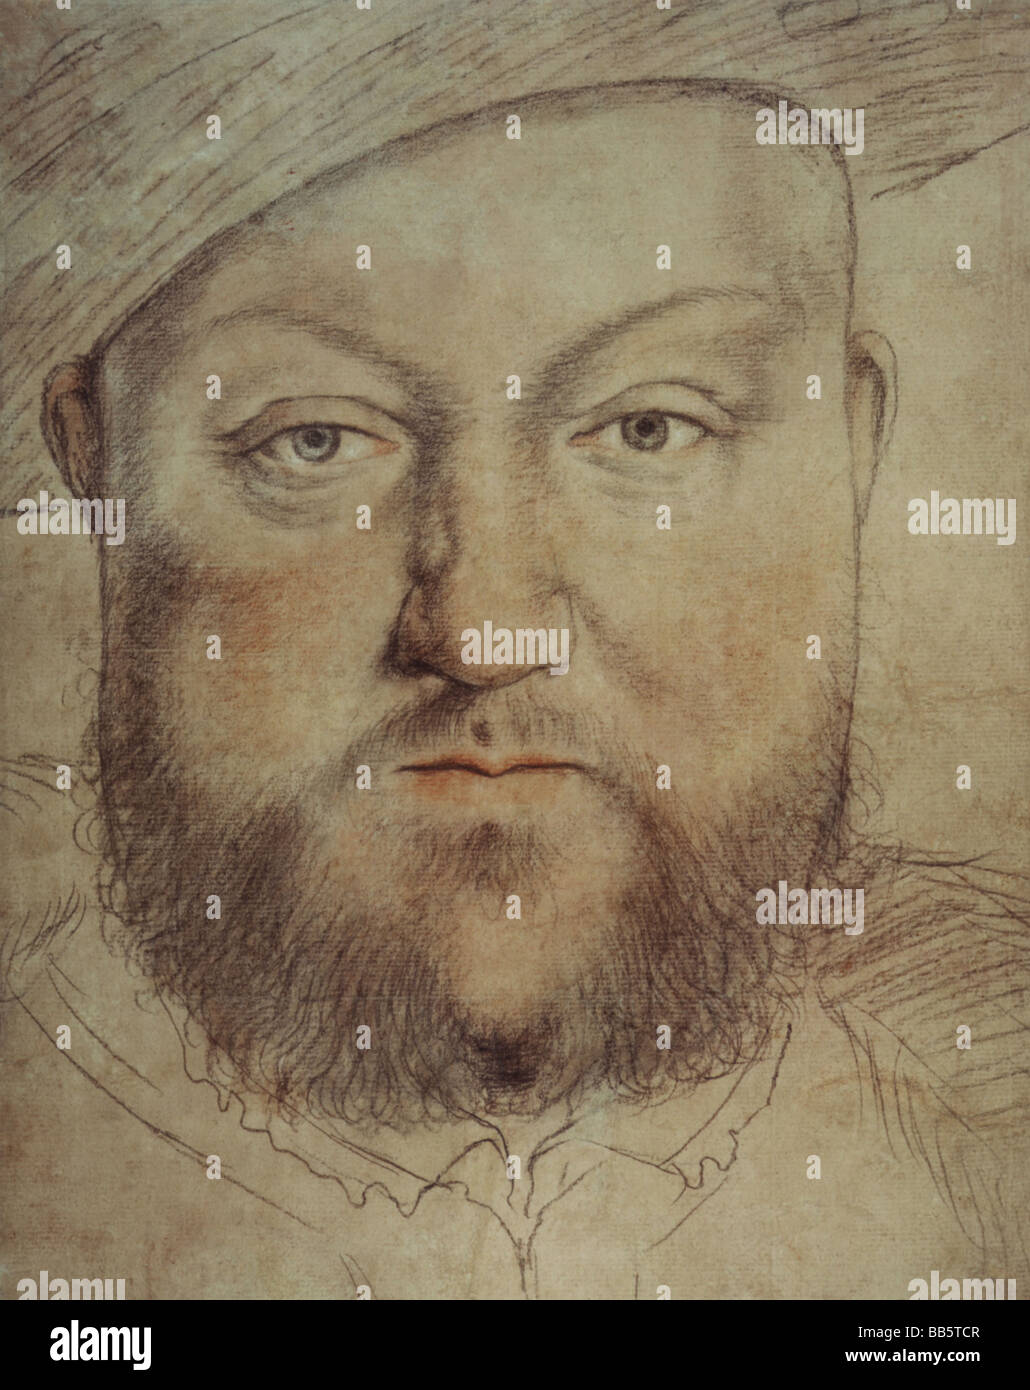 Henry VIII, 28.6.1491 - 28.1.1547, King of England since 1509, portrait, painting by Hans Holbein the Younger (1497 - 1543), Artist's Copyright has not to be cleared Stock Photo